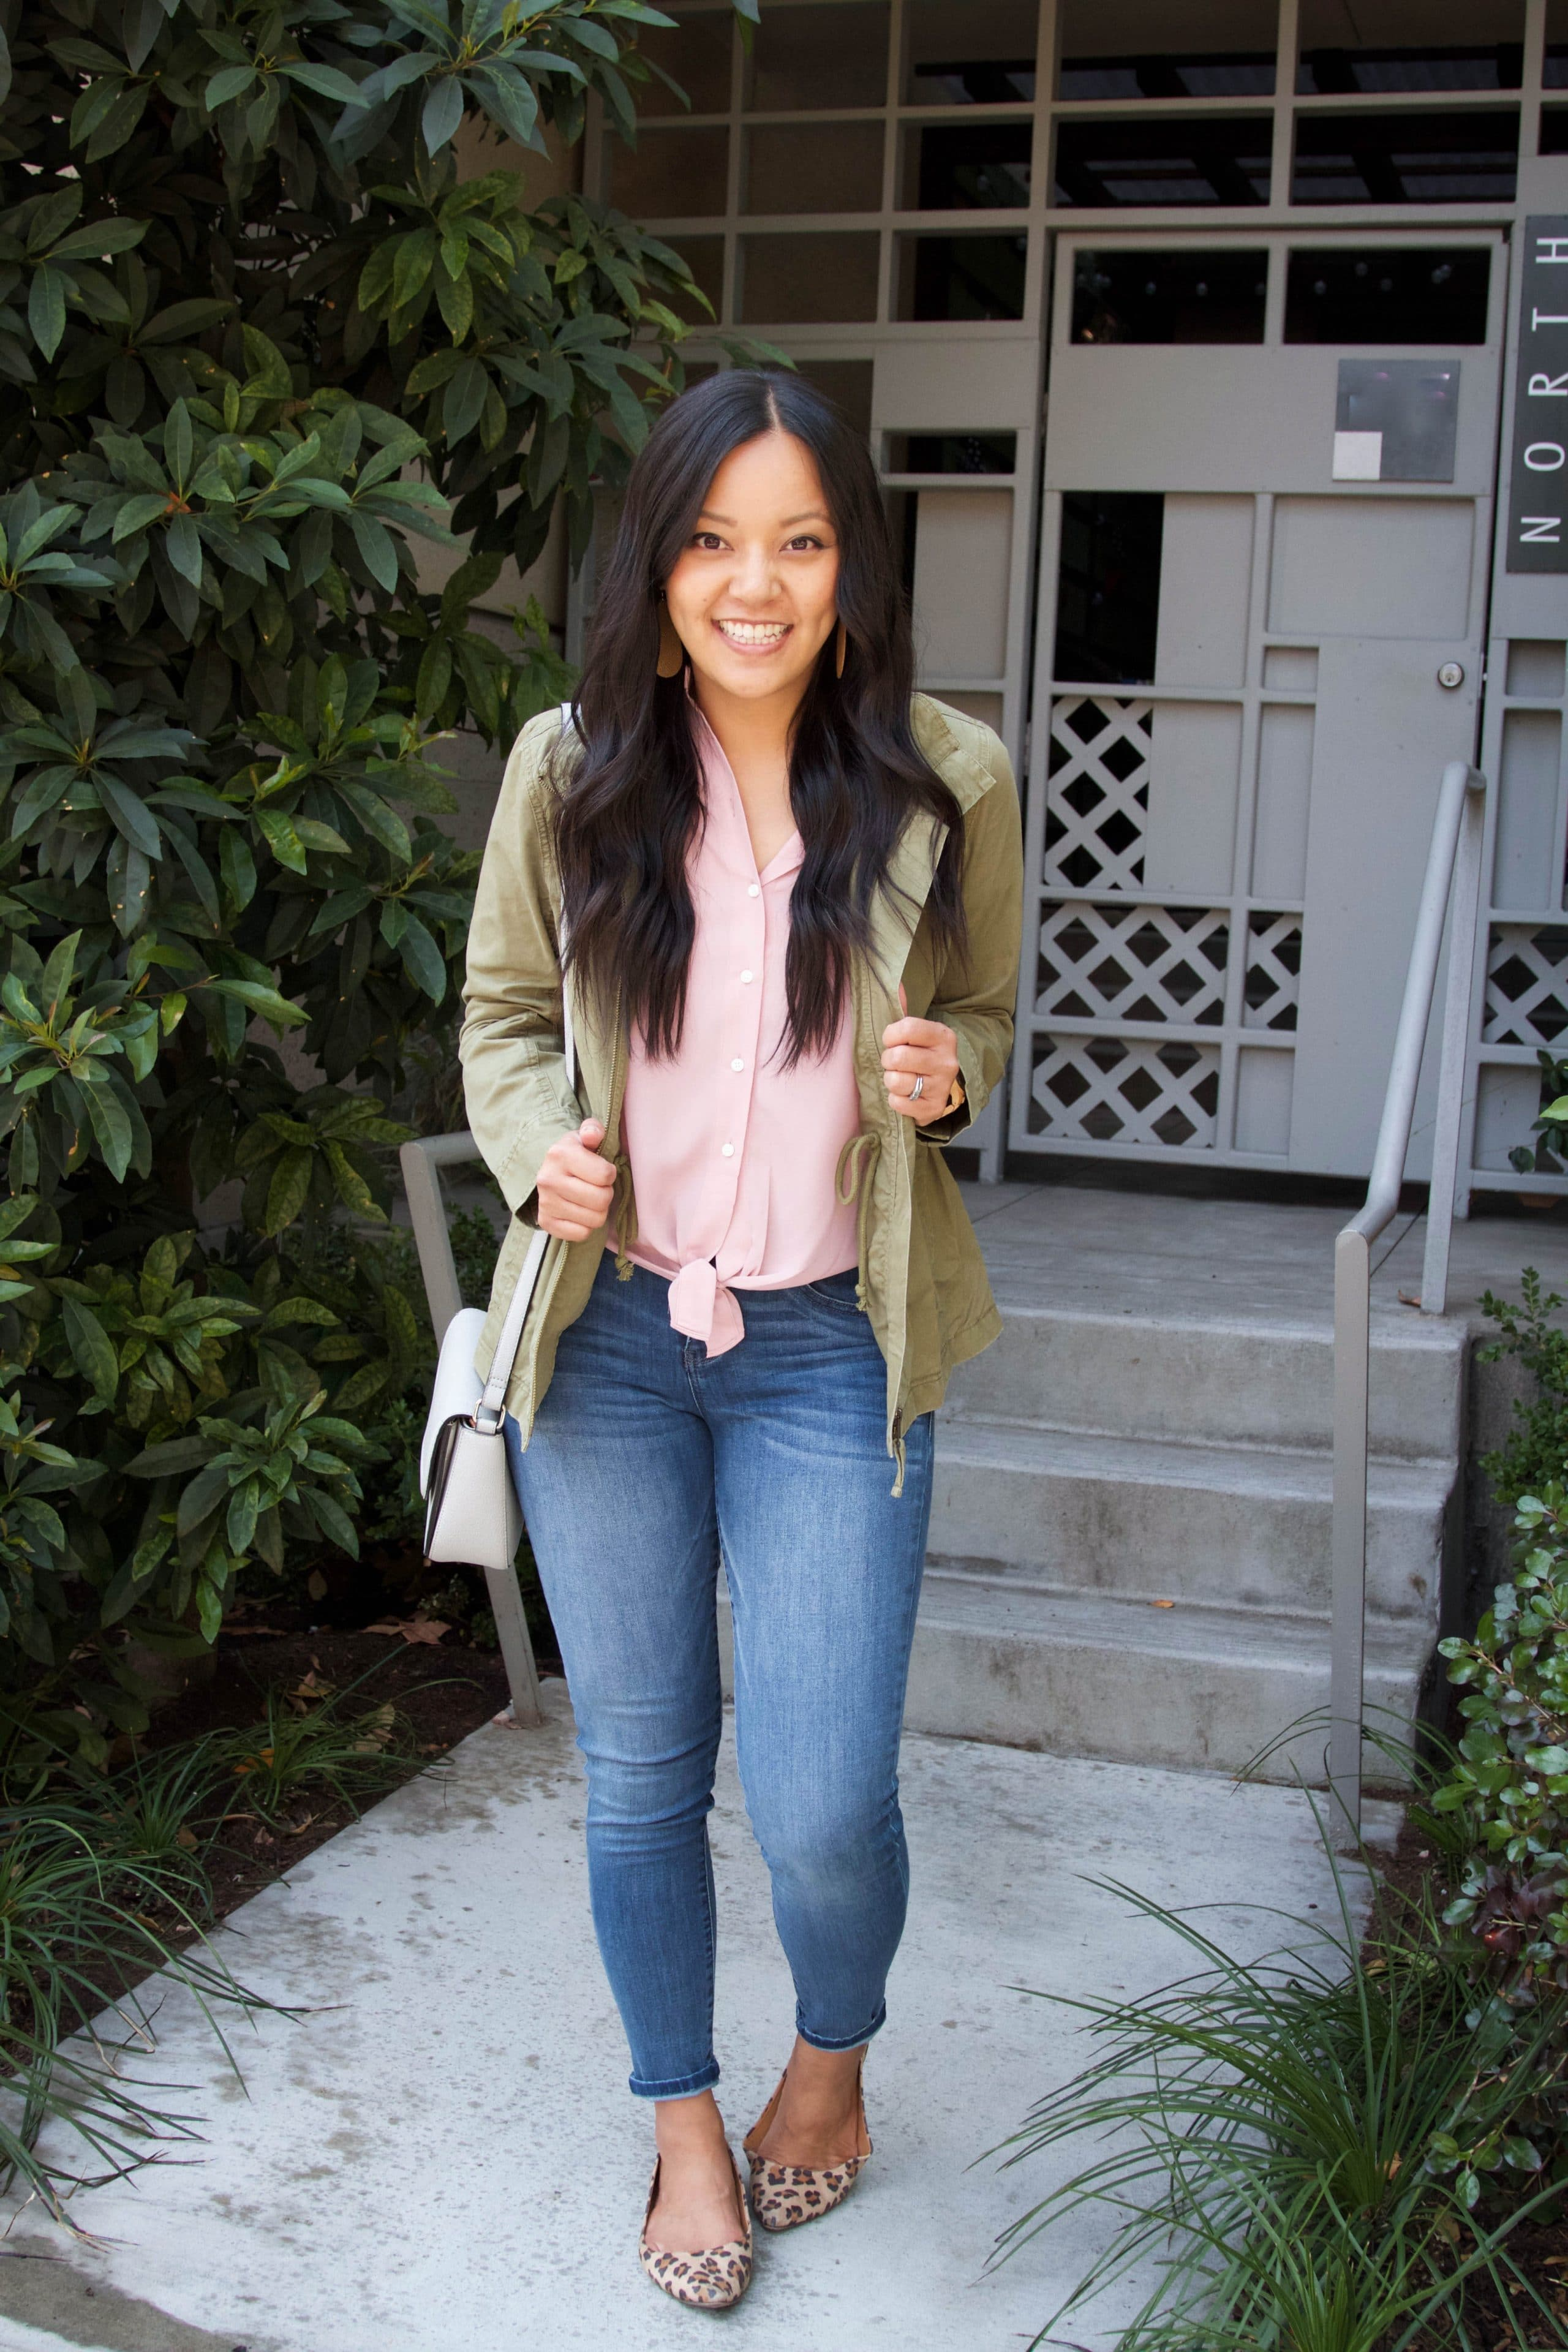 Utility jacket + Pink Tie Top + Light Jeans + Leopard Flats